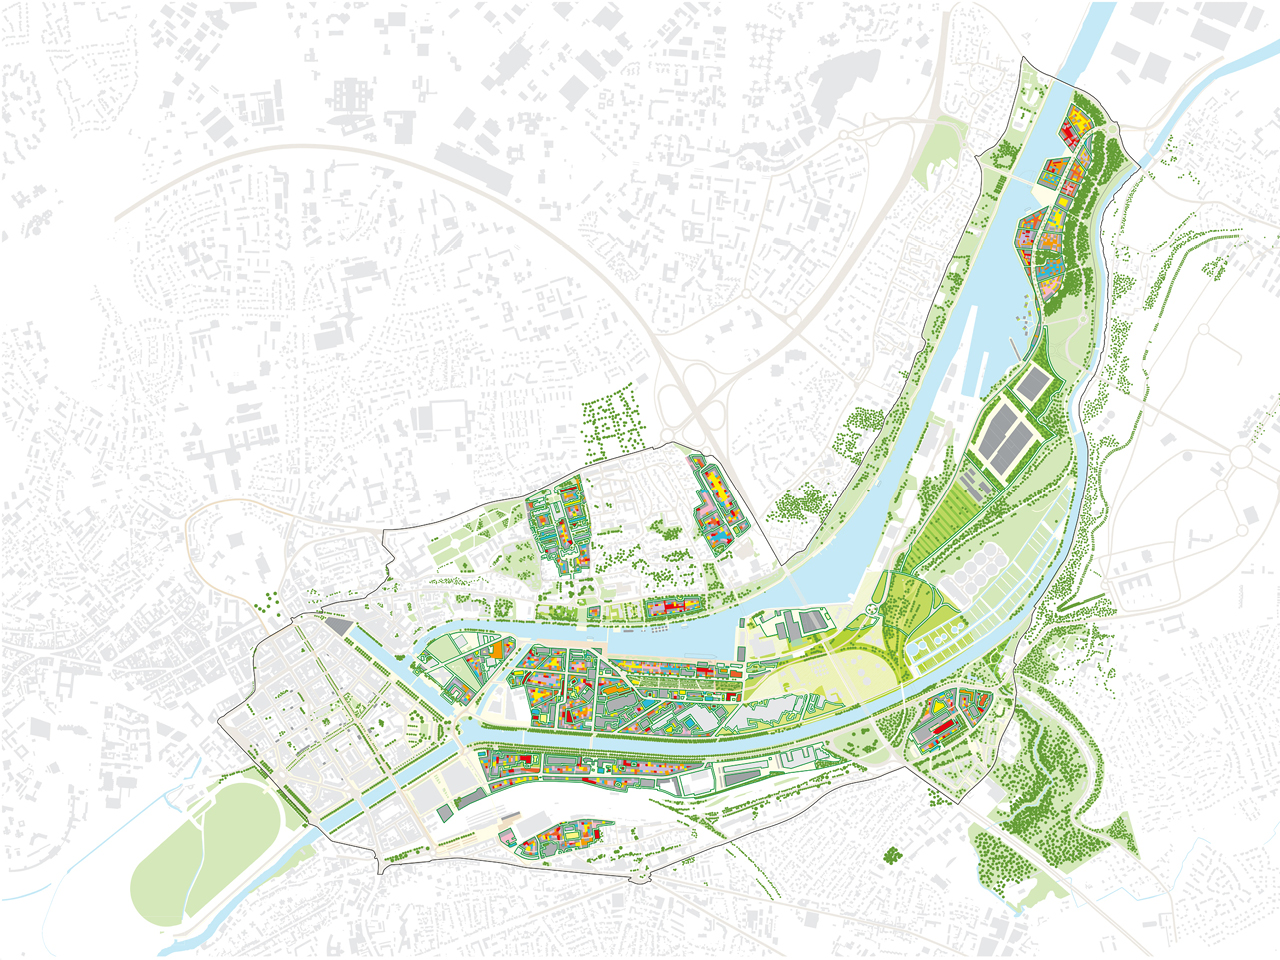 MVRDV Presents La Grande Mosaïque, 600 Hectare Urban Plan In Caen, Normandy